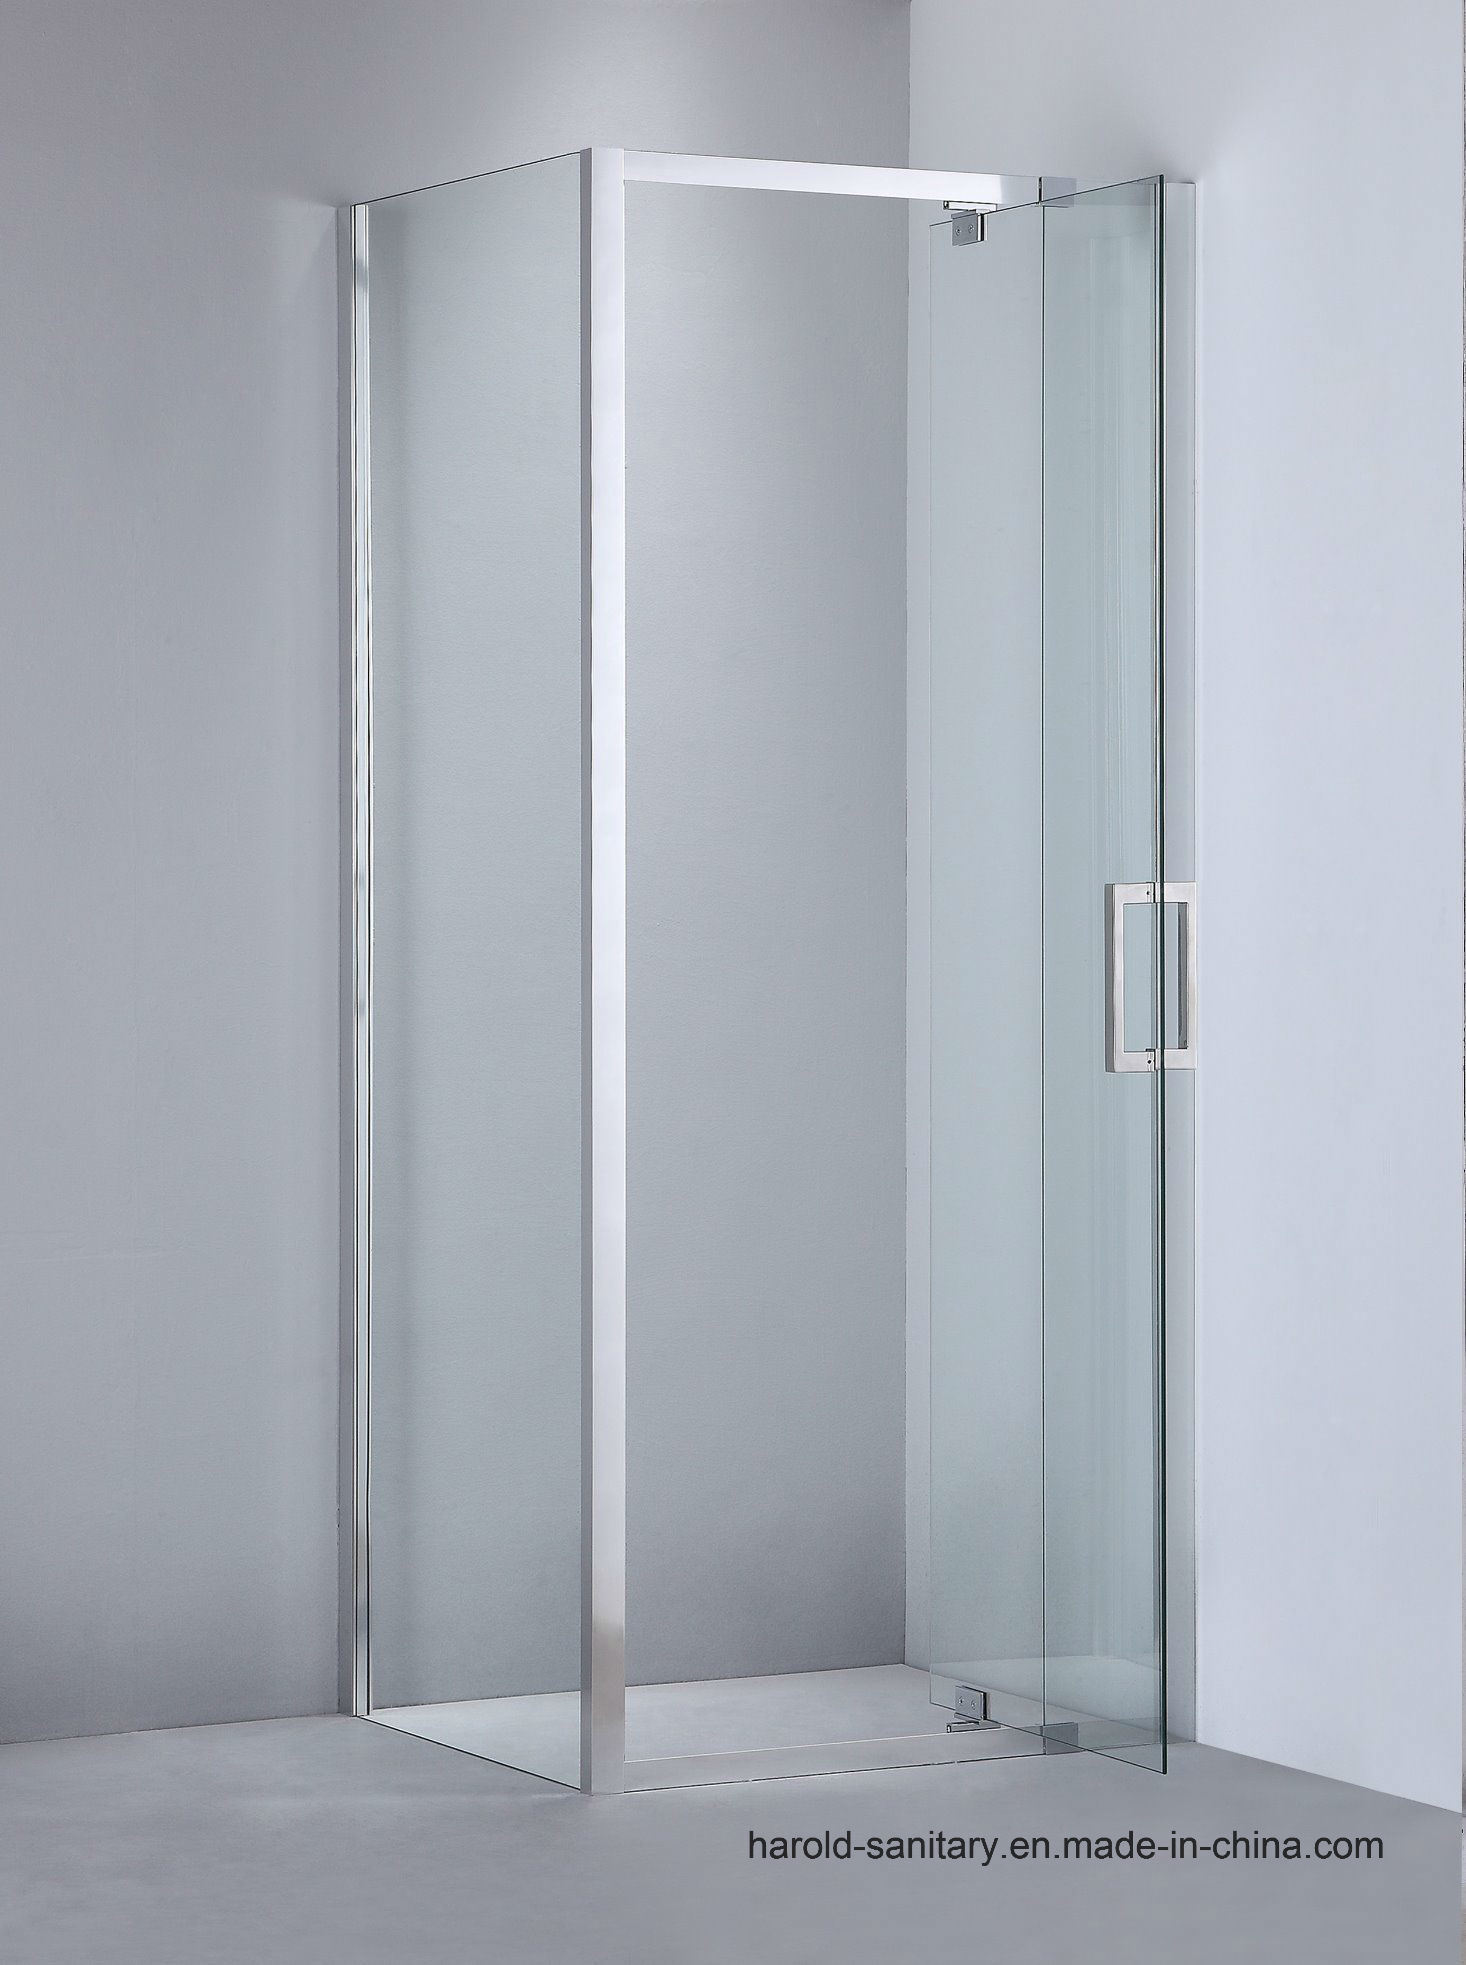 China Hr 012 D Straight Hinge Swing Extension Glass To Glass Shower